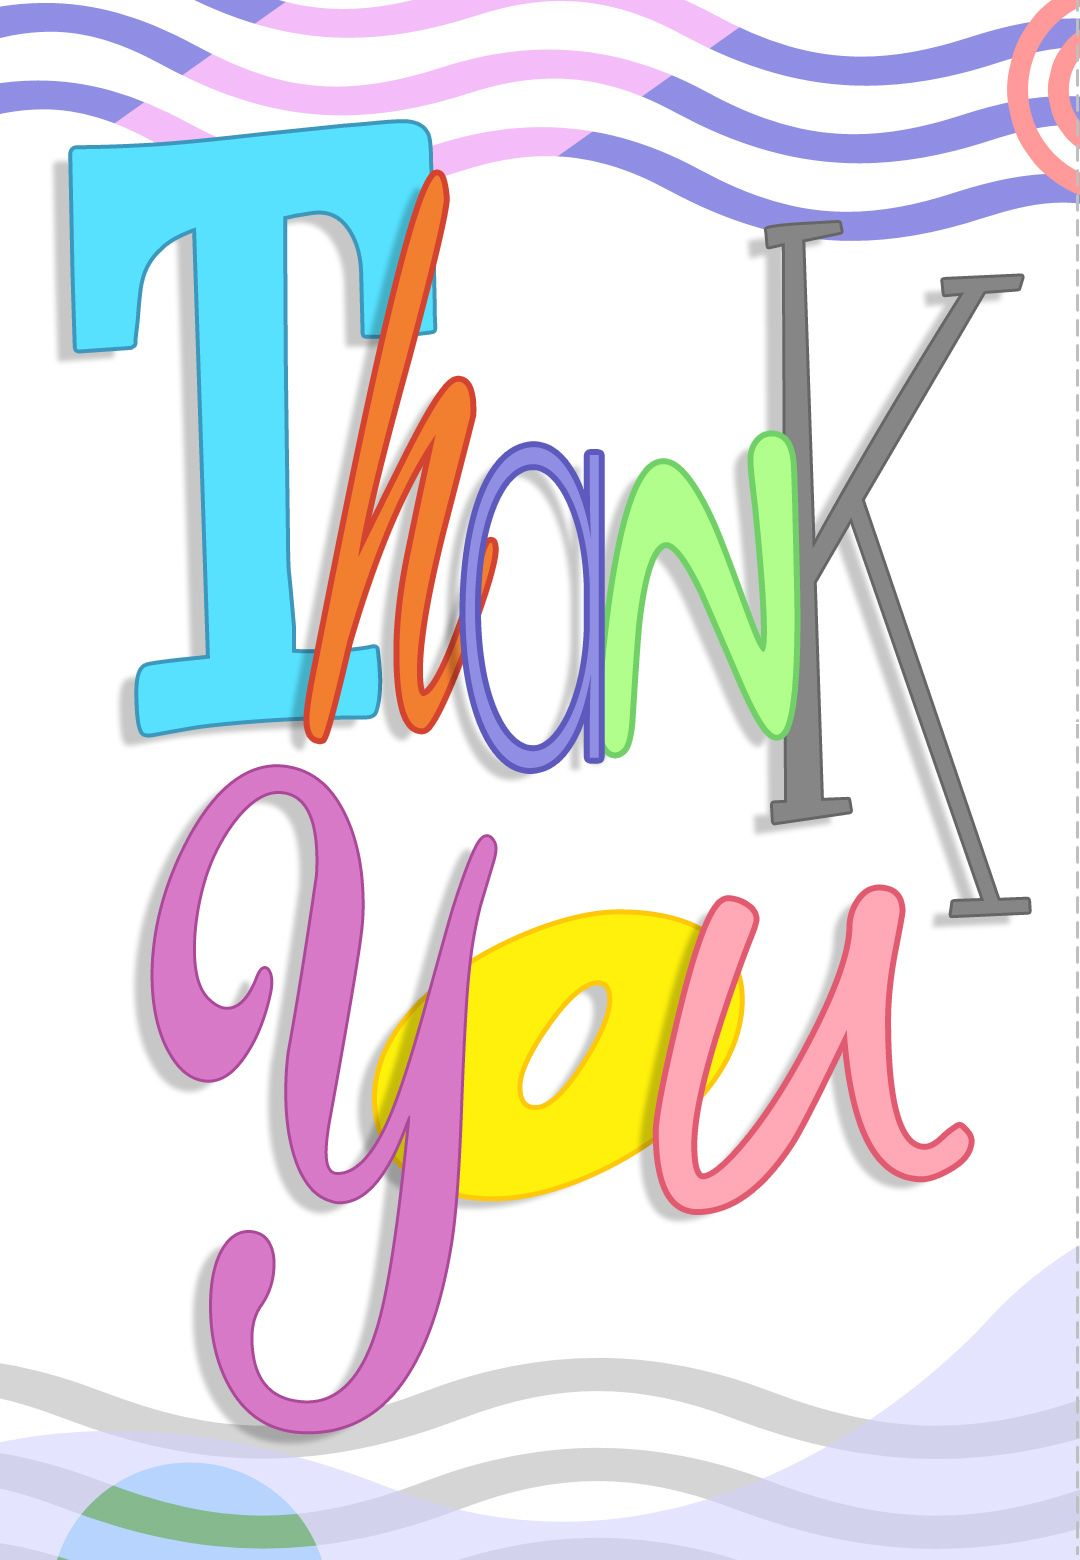 Thank you so much to the lovely people for sharing their beautiful thank you so much to the lovely people for sharing their beautiful pins kristyandbryce Choice Image